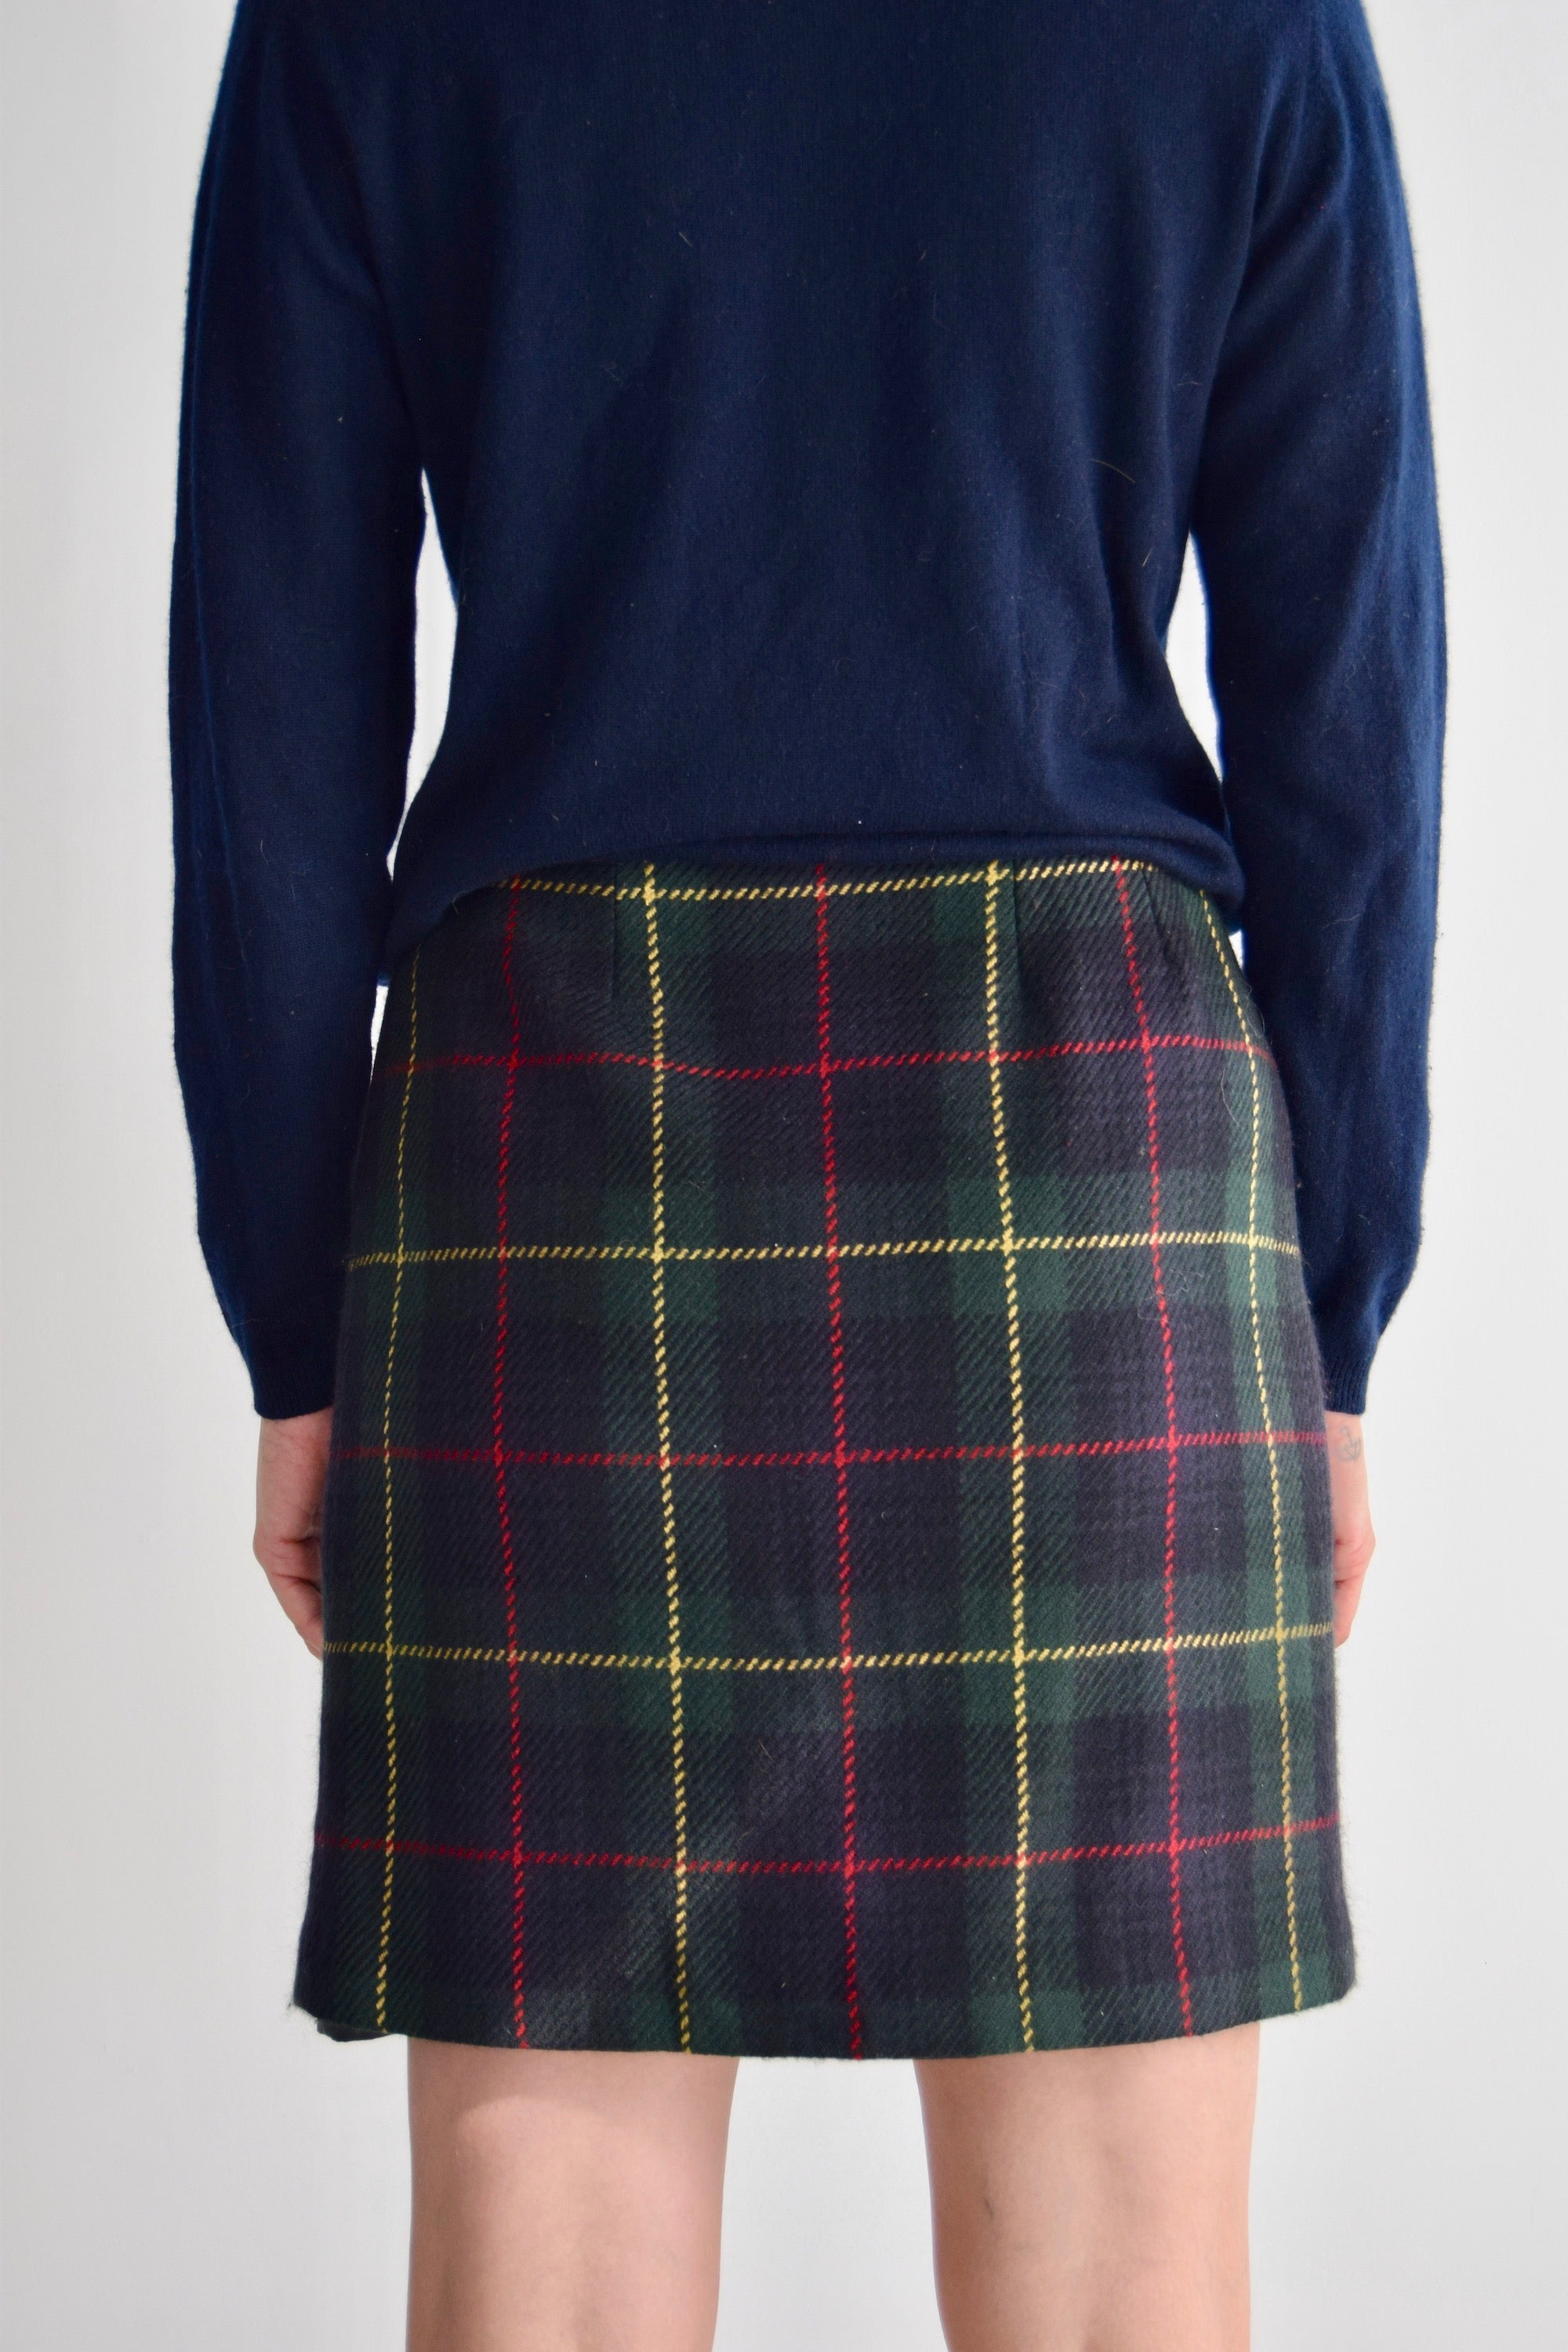 Vintage Talbots Green Yellow and Red Plaid Wool Skirt